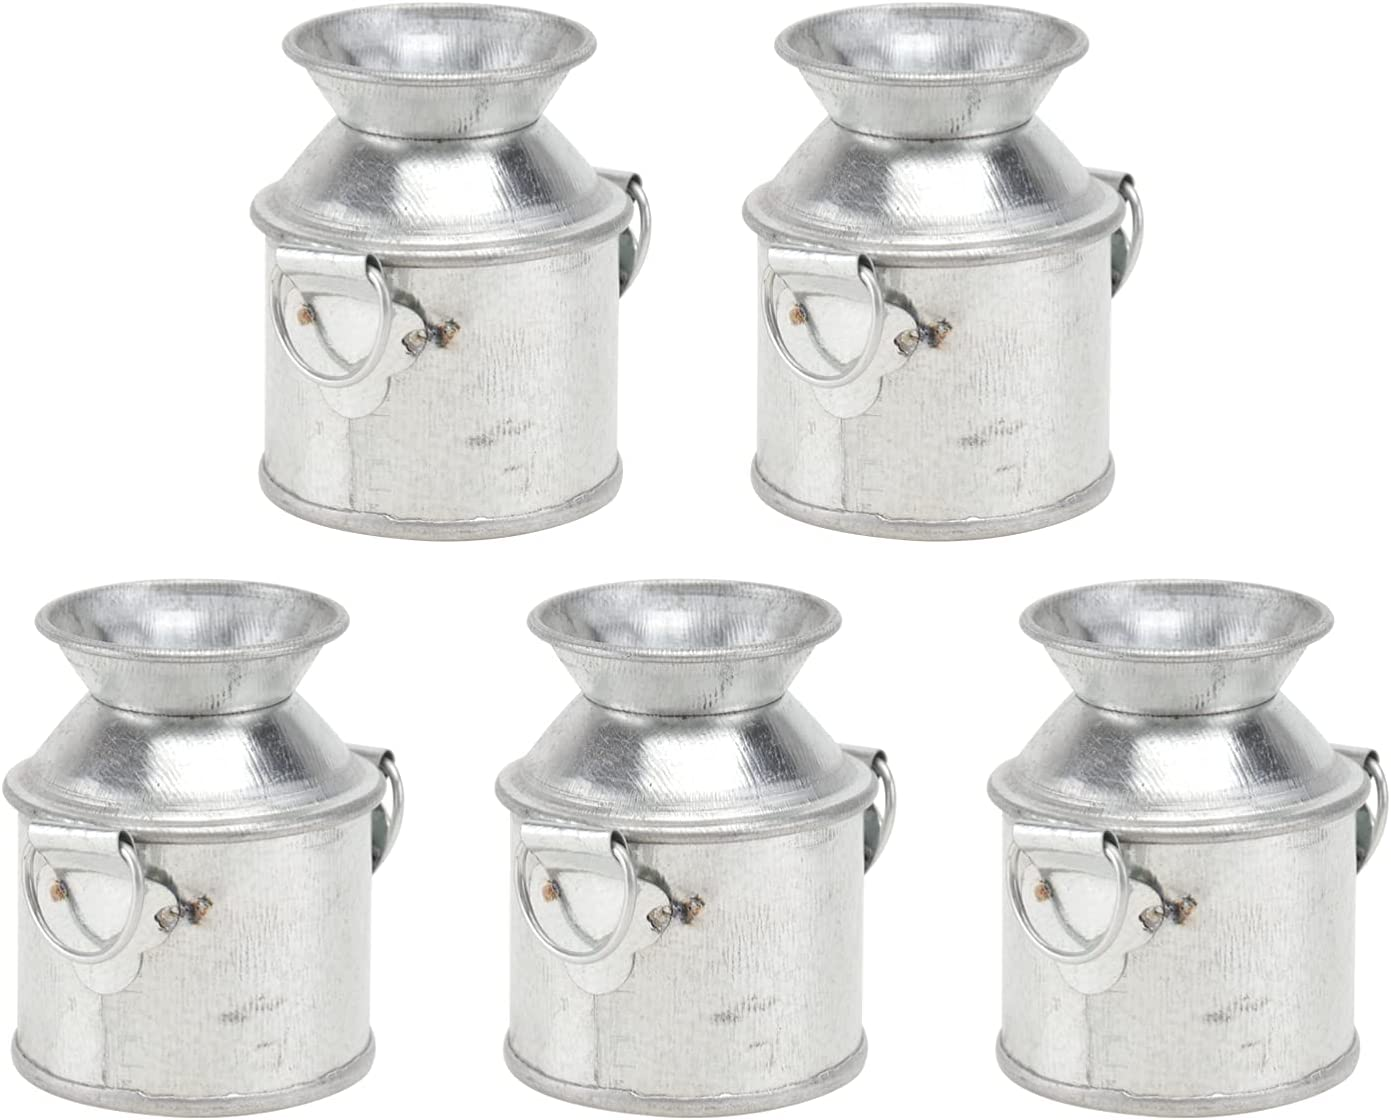 Cabilock 5 Pcs Mini Rustic Galvanized Vase Shabby Chic Small Metal Bucket Dollhouse Flower Plant Vase Milk Can Candy Container for Micro Garden Landscape Decorations 5 X3. 5X2. 5cm Silver